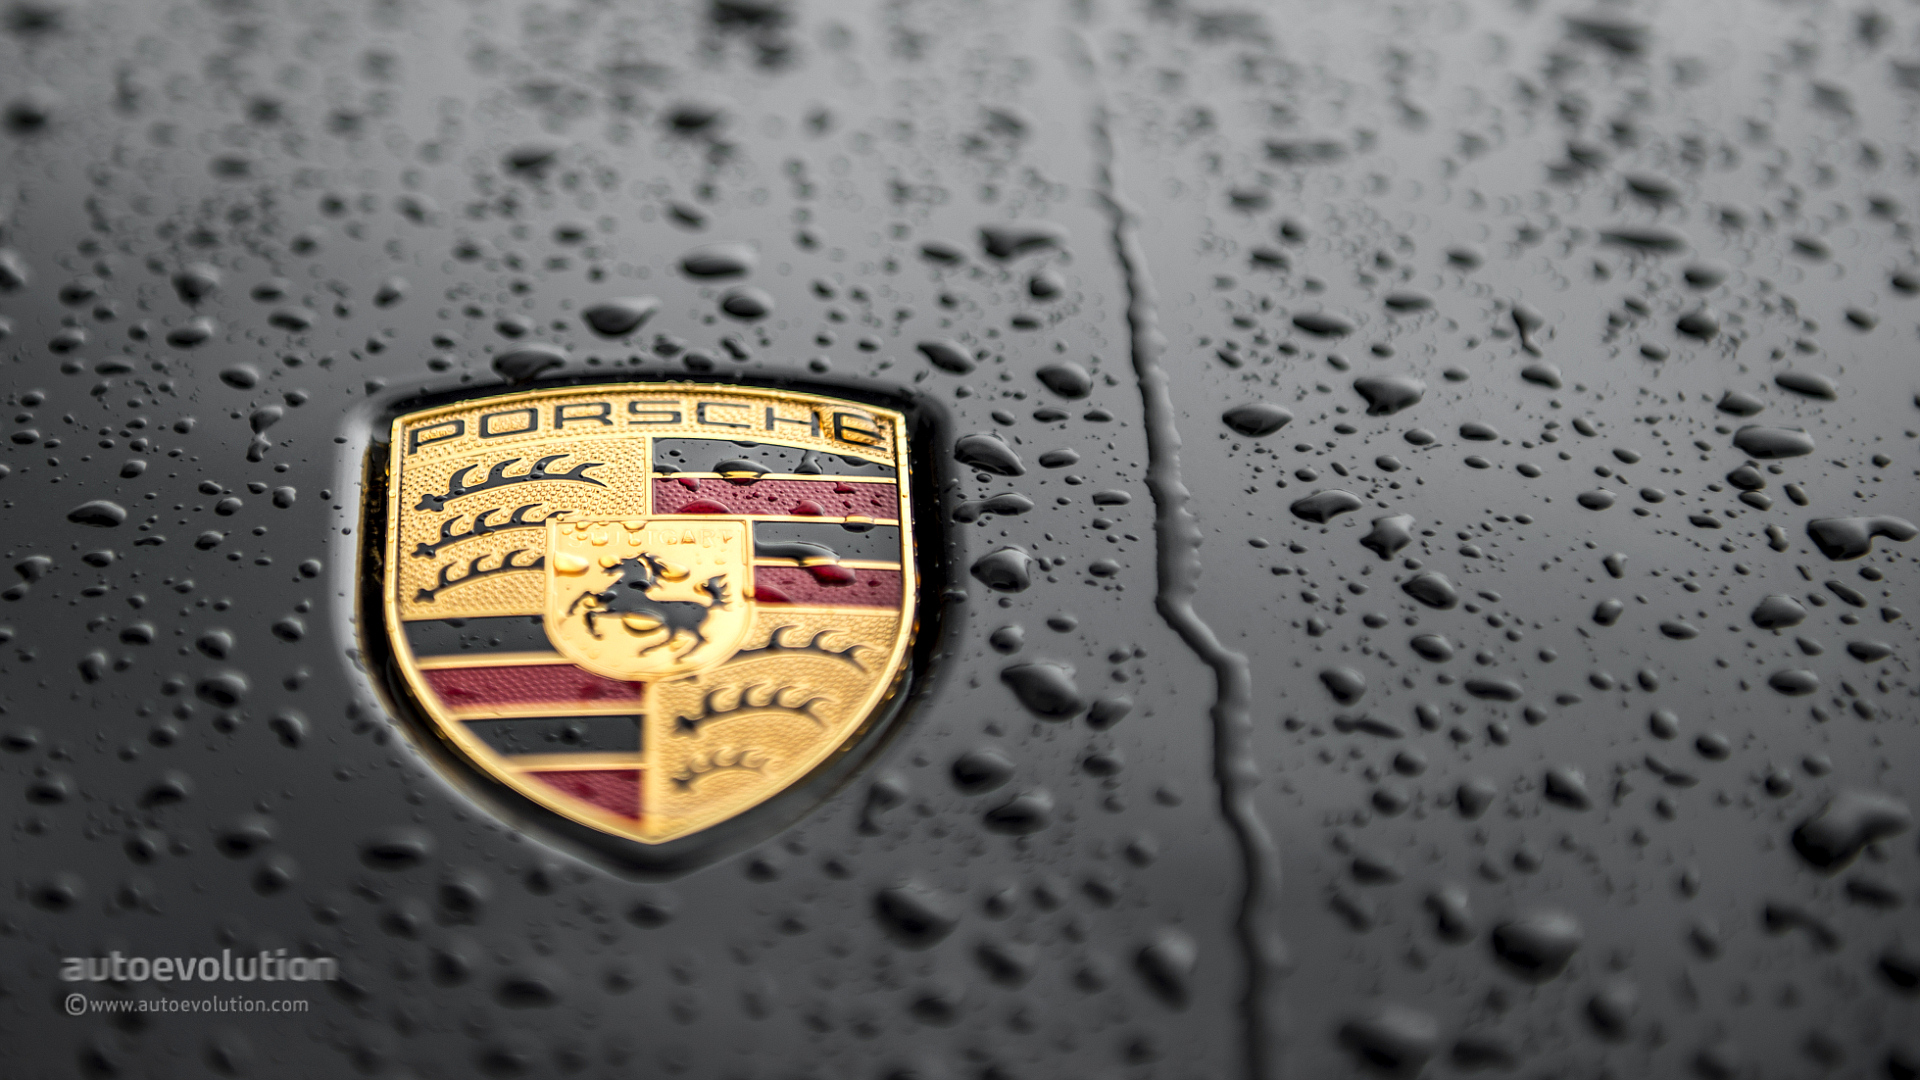 porsche chooses romania for software development, awards employees